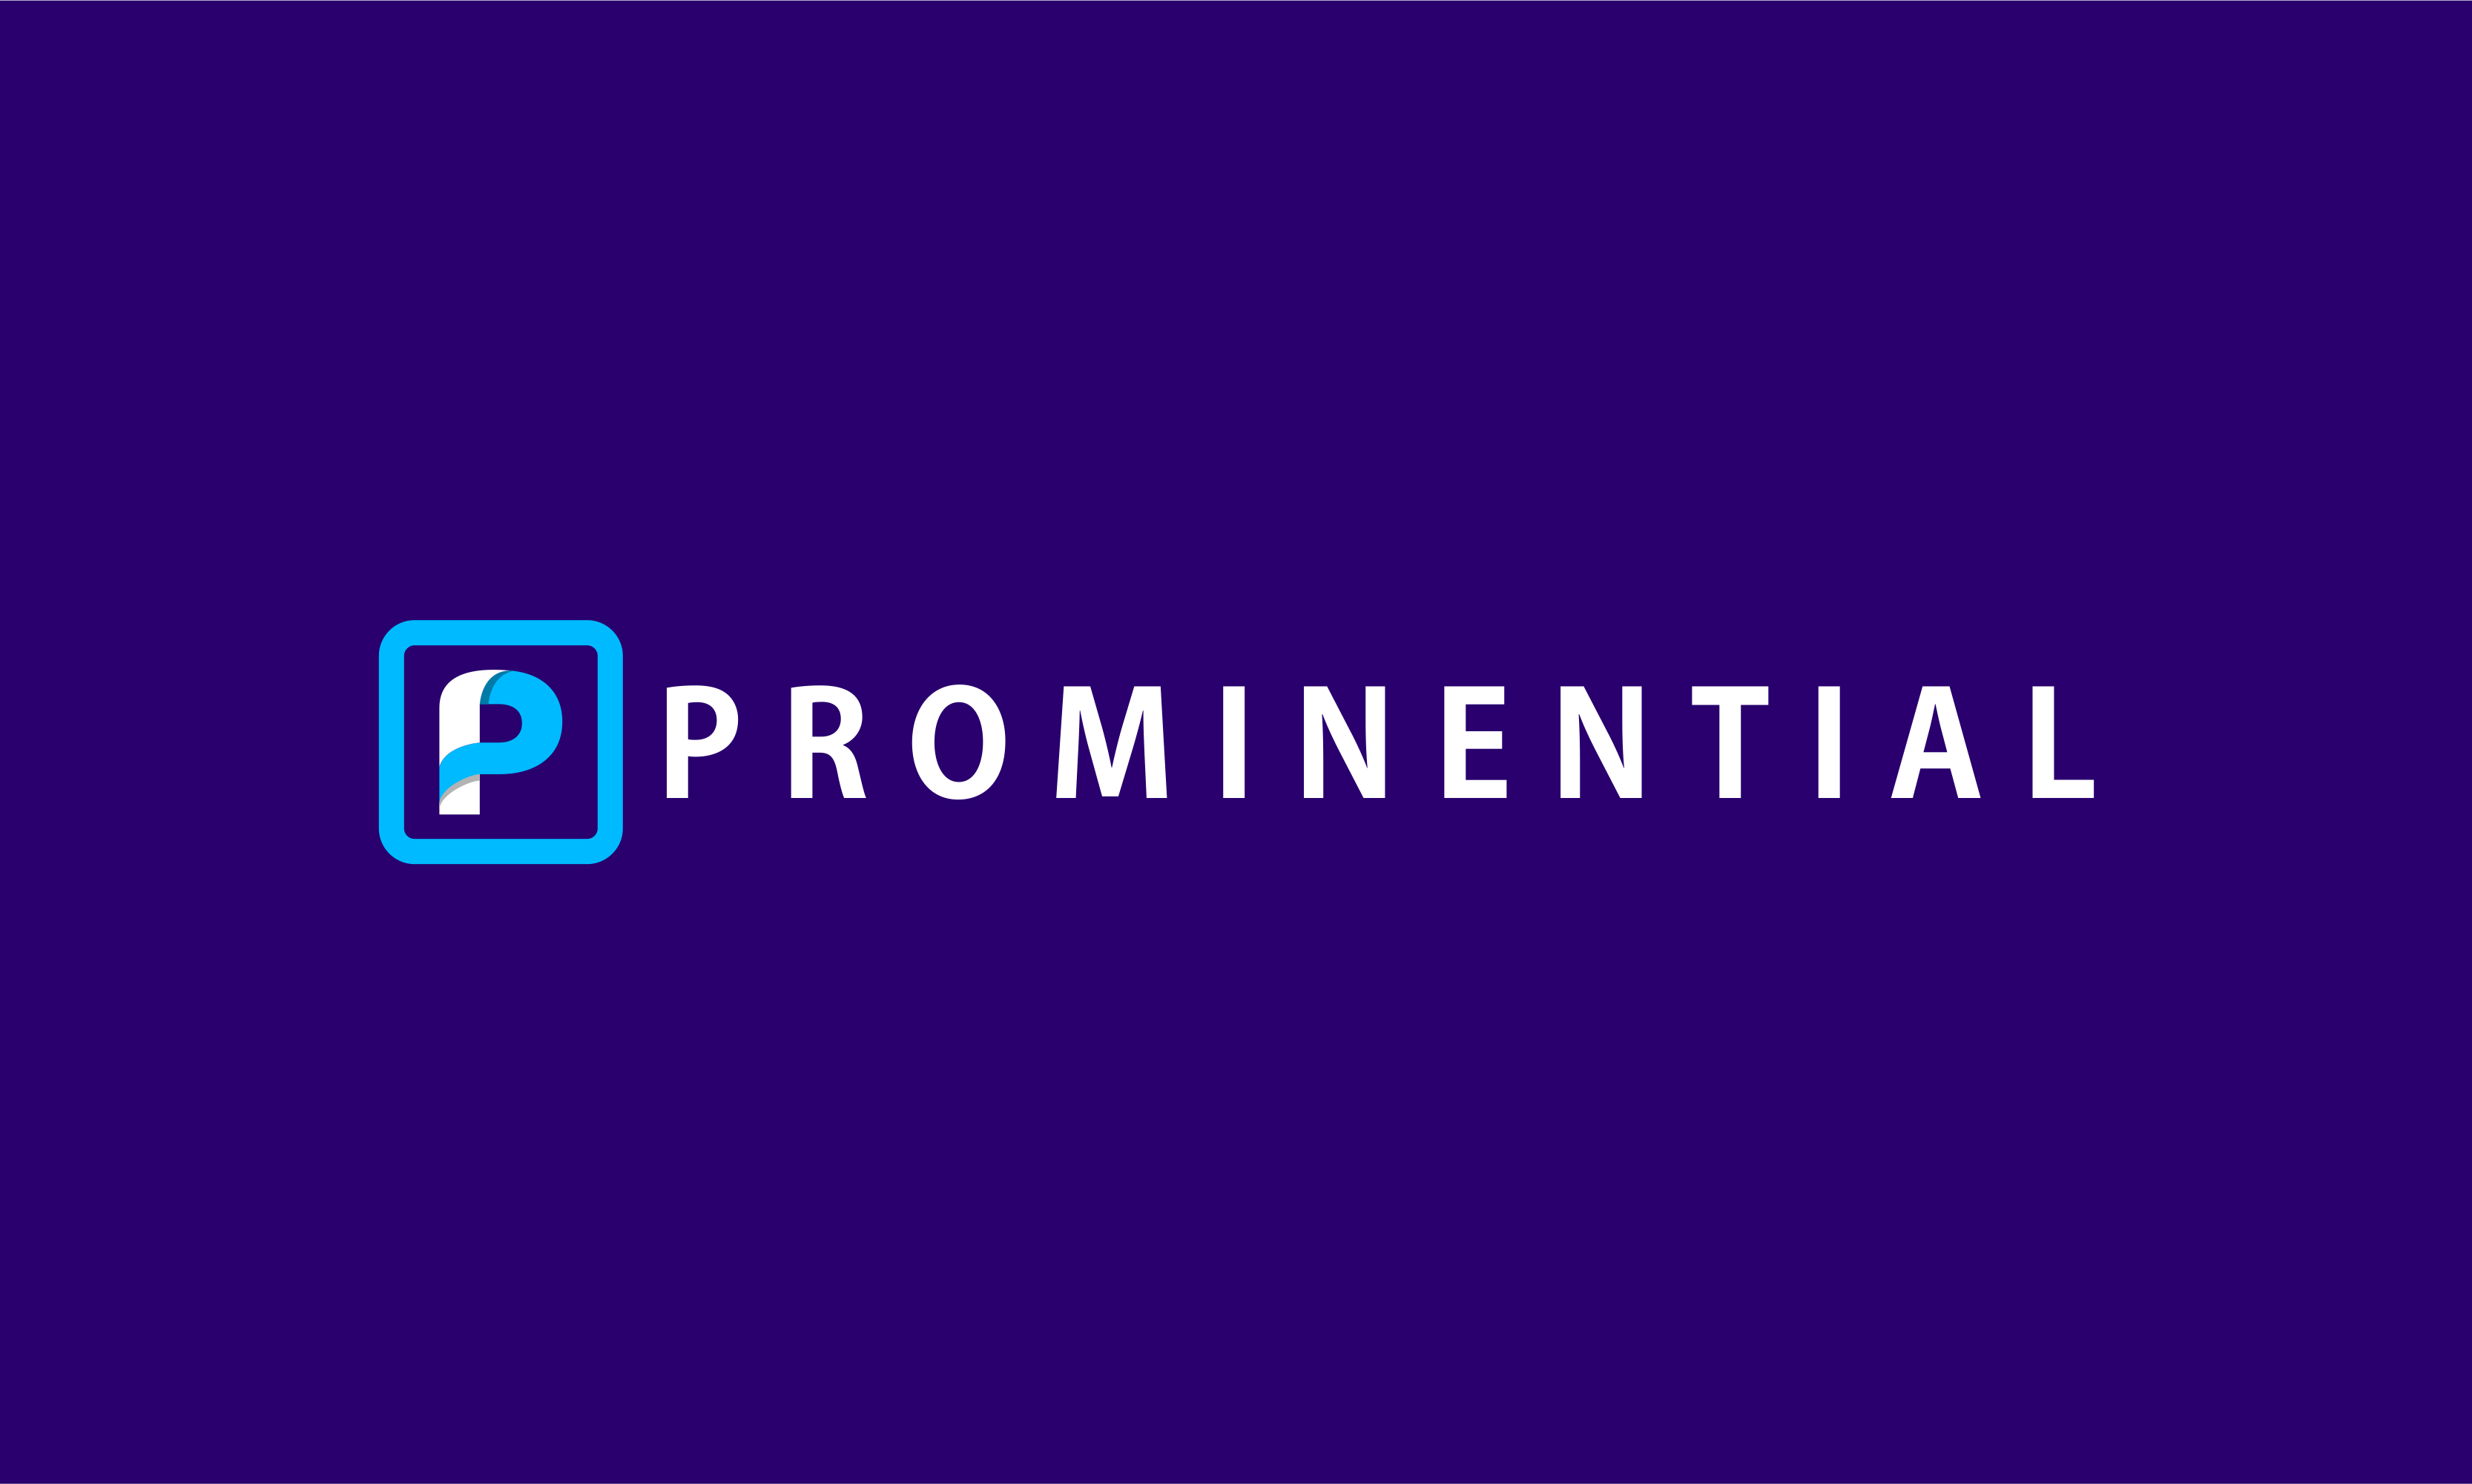 Prominential